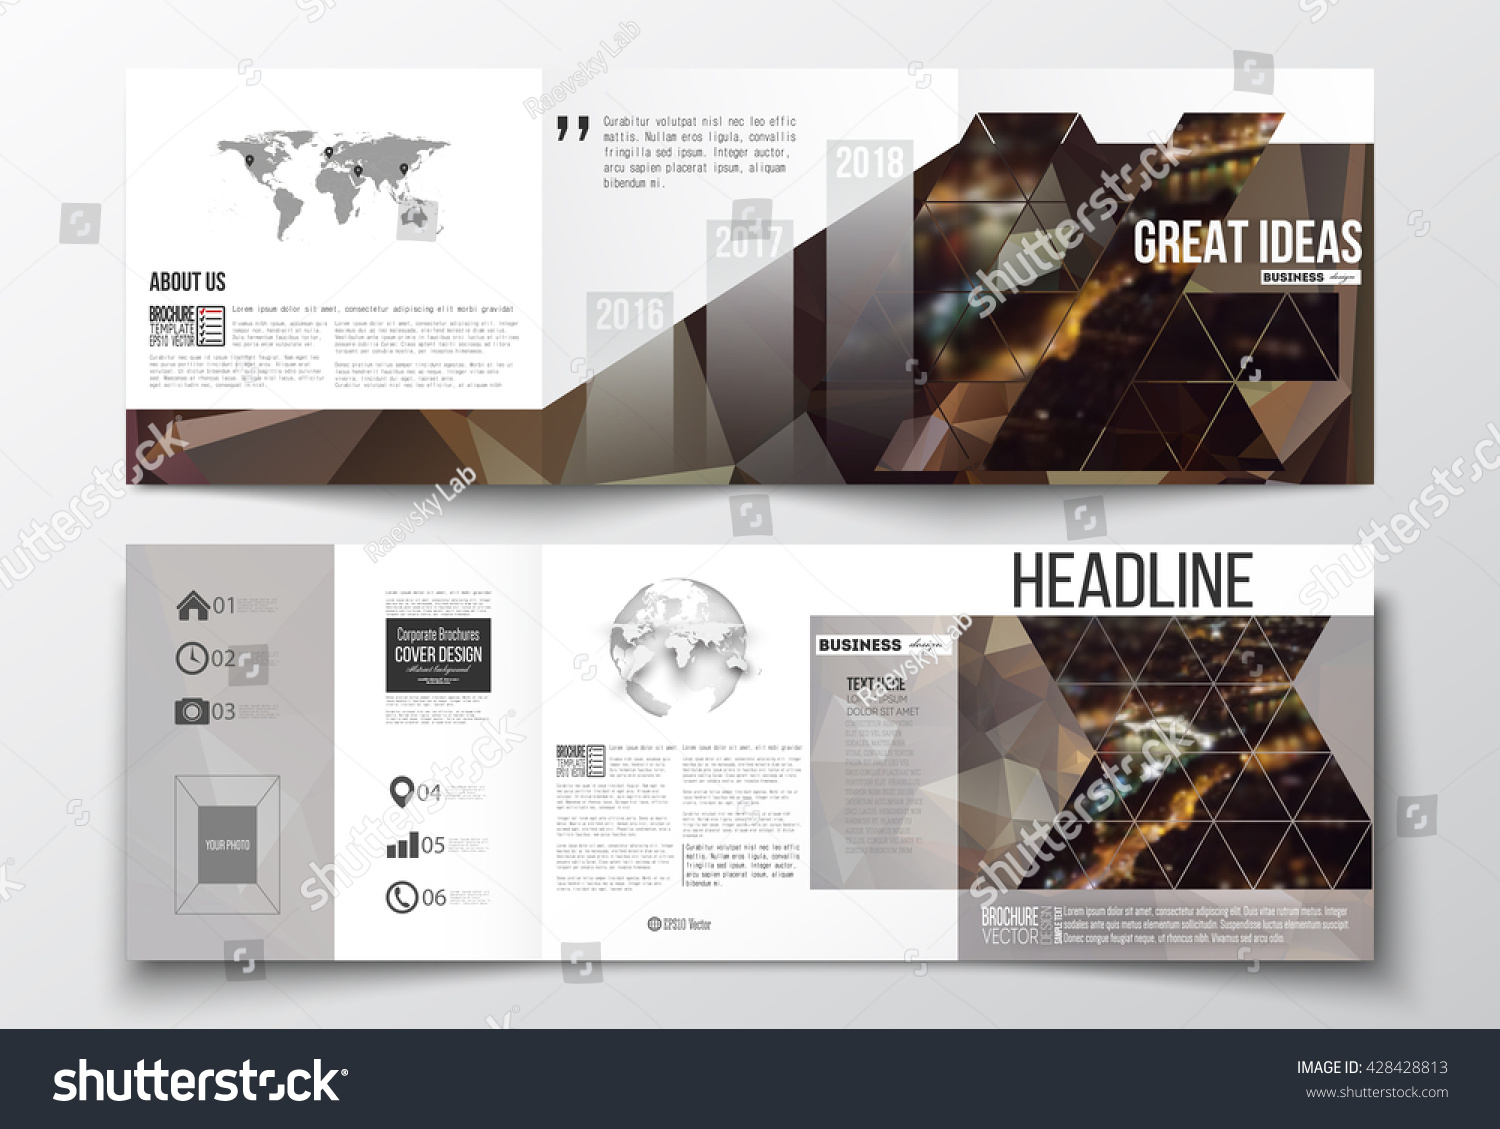 Vector Set Of Tri Fold Brochures Square Design Templates With Element Of World Map